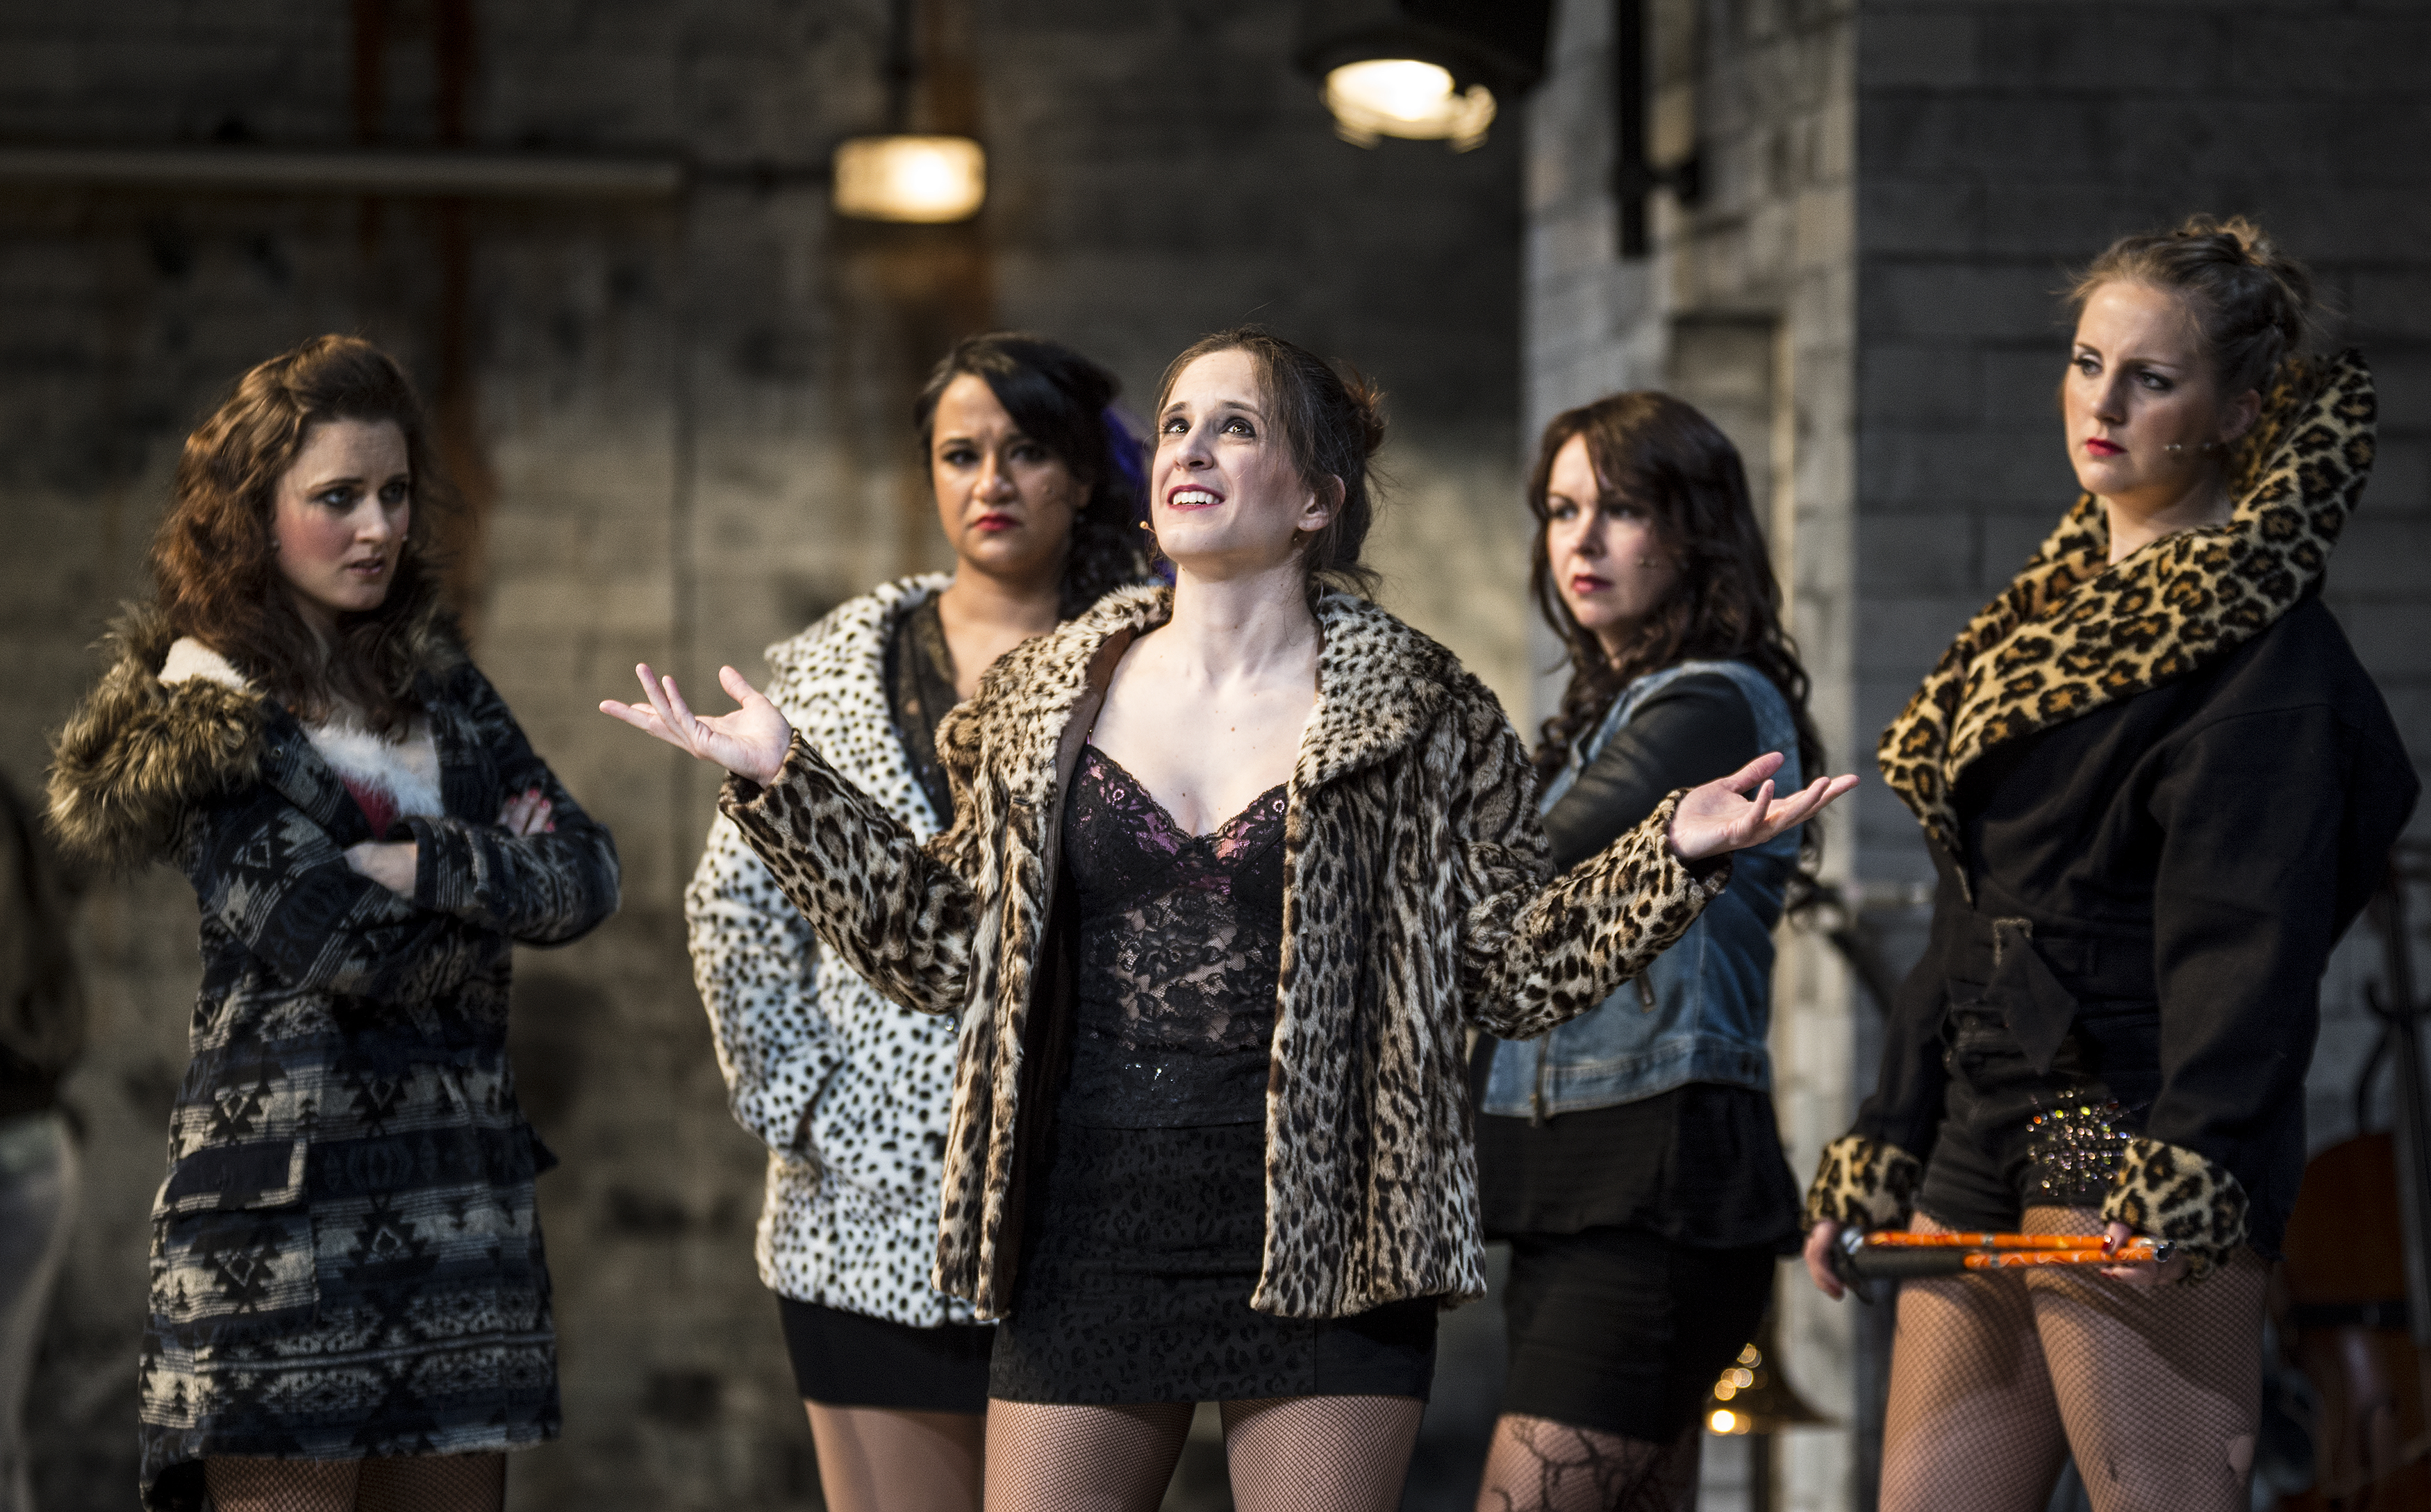 Barbara Hockaday, Natasha Lewis, Amelia Cavallo, Jude Mahon and Stacey Ghent in The Threepenny Opera: a Graeae Theatre Company co production with Nottingham Playhouse and the Wolsey Theatre, Ipswich. Photo © Patrick Baldwin.